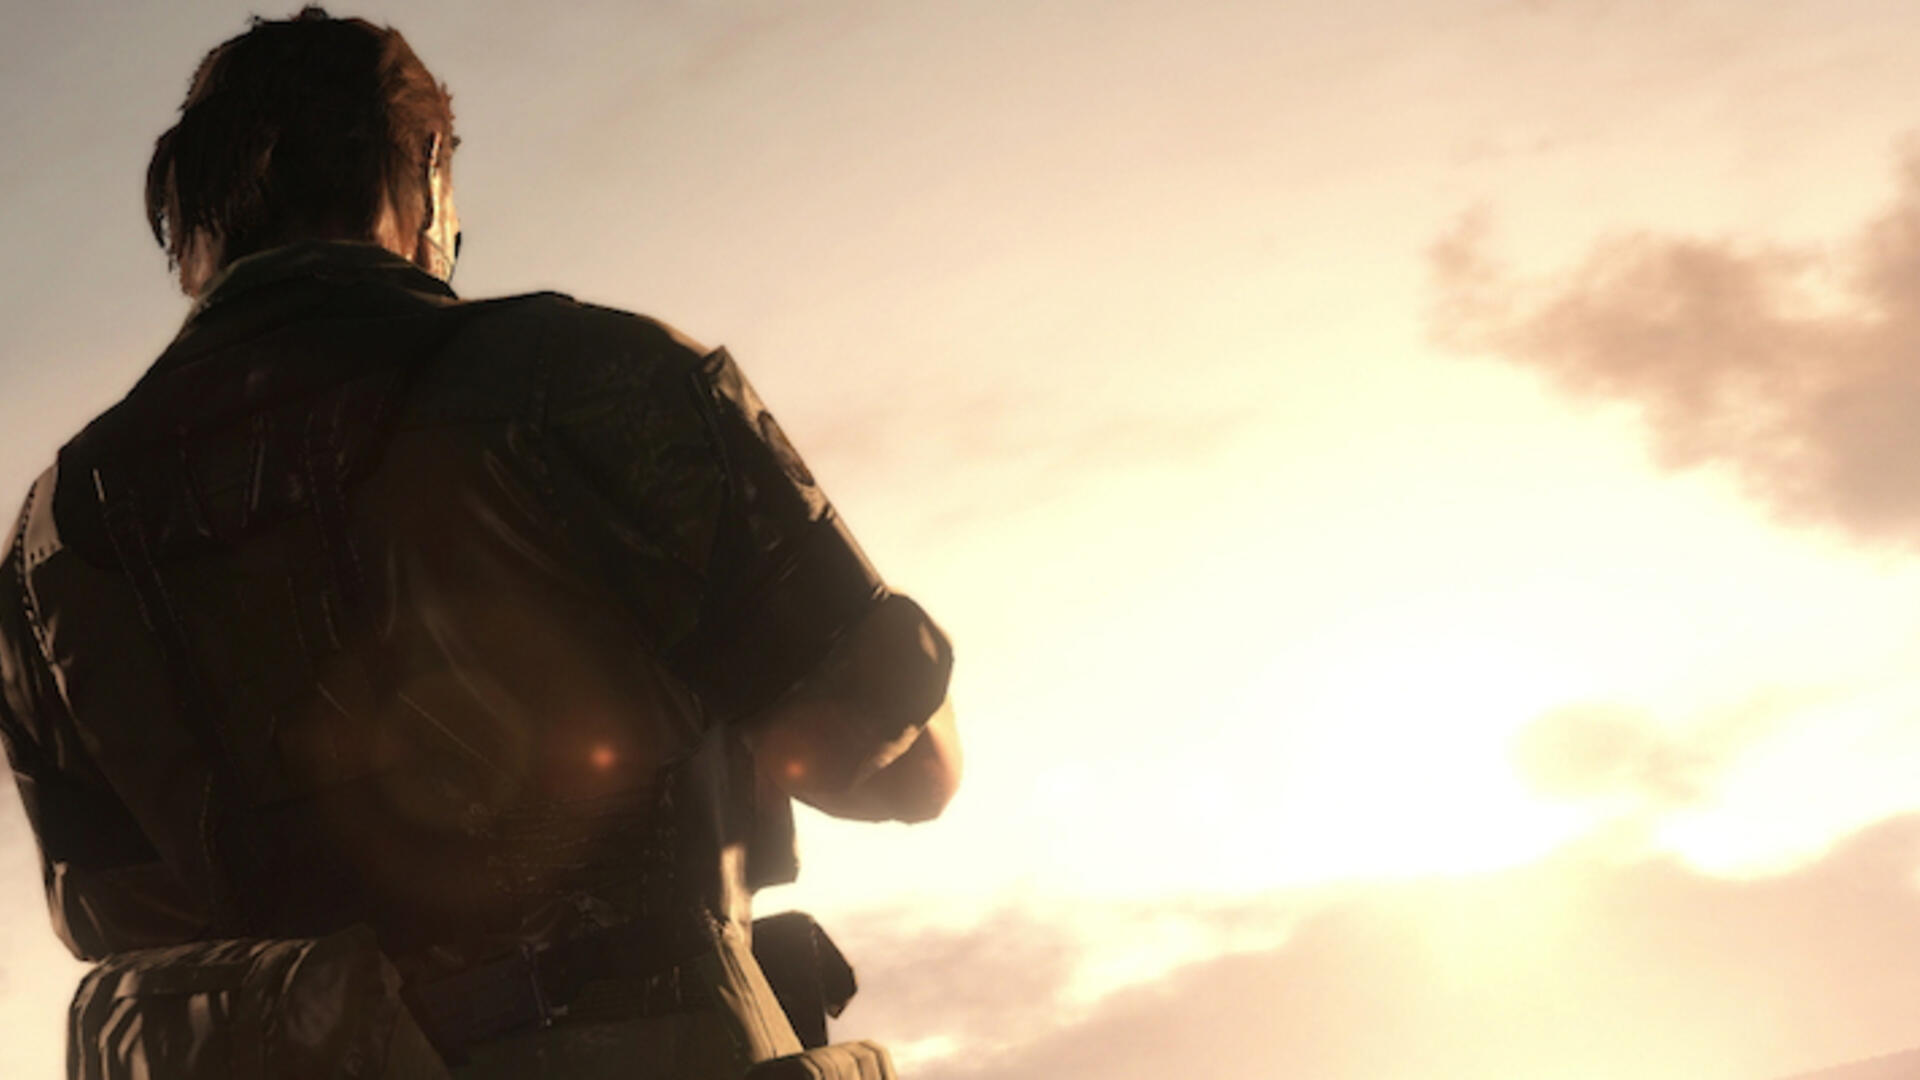 Metal Gear Solid V: The Phantom Pain PlayStation 4 Review: All Good Things [Update: Now With a Score]